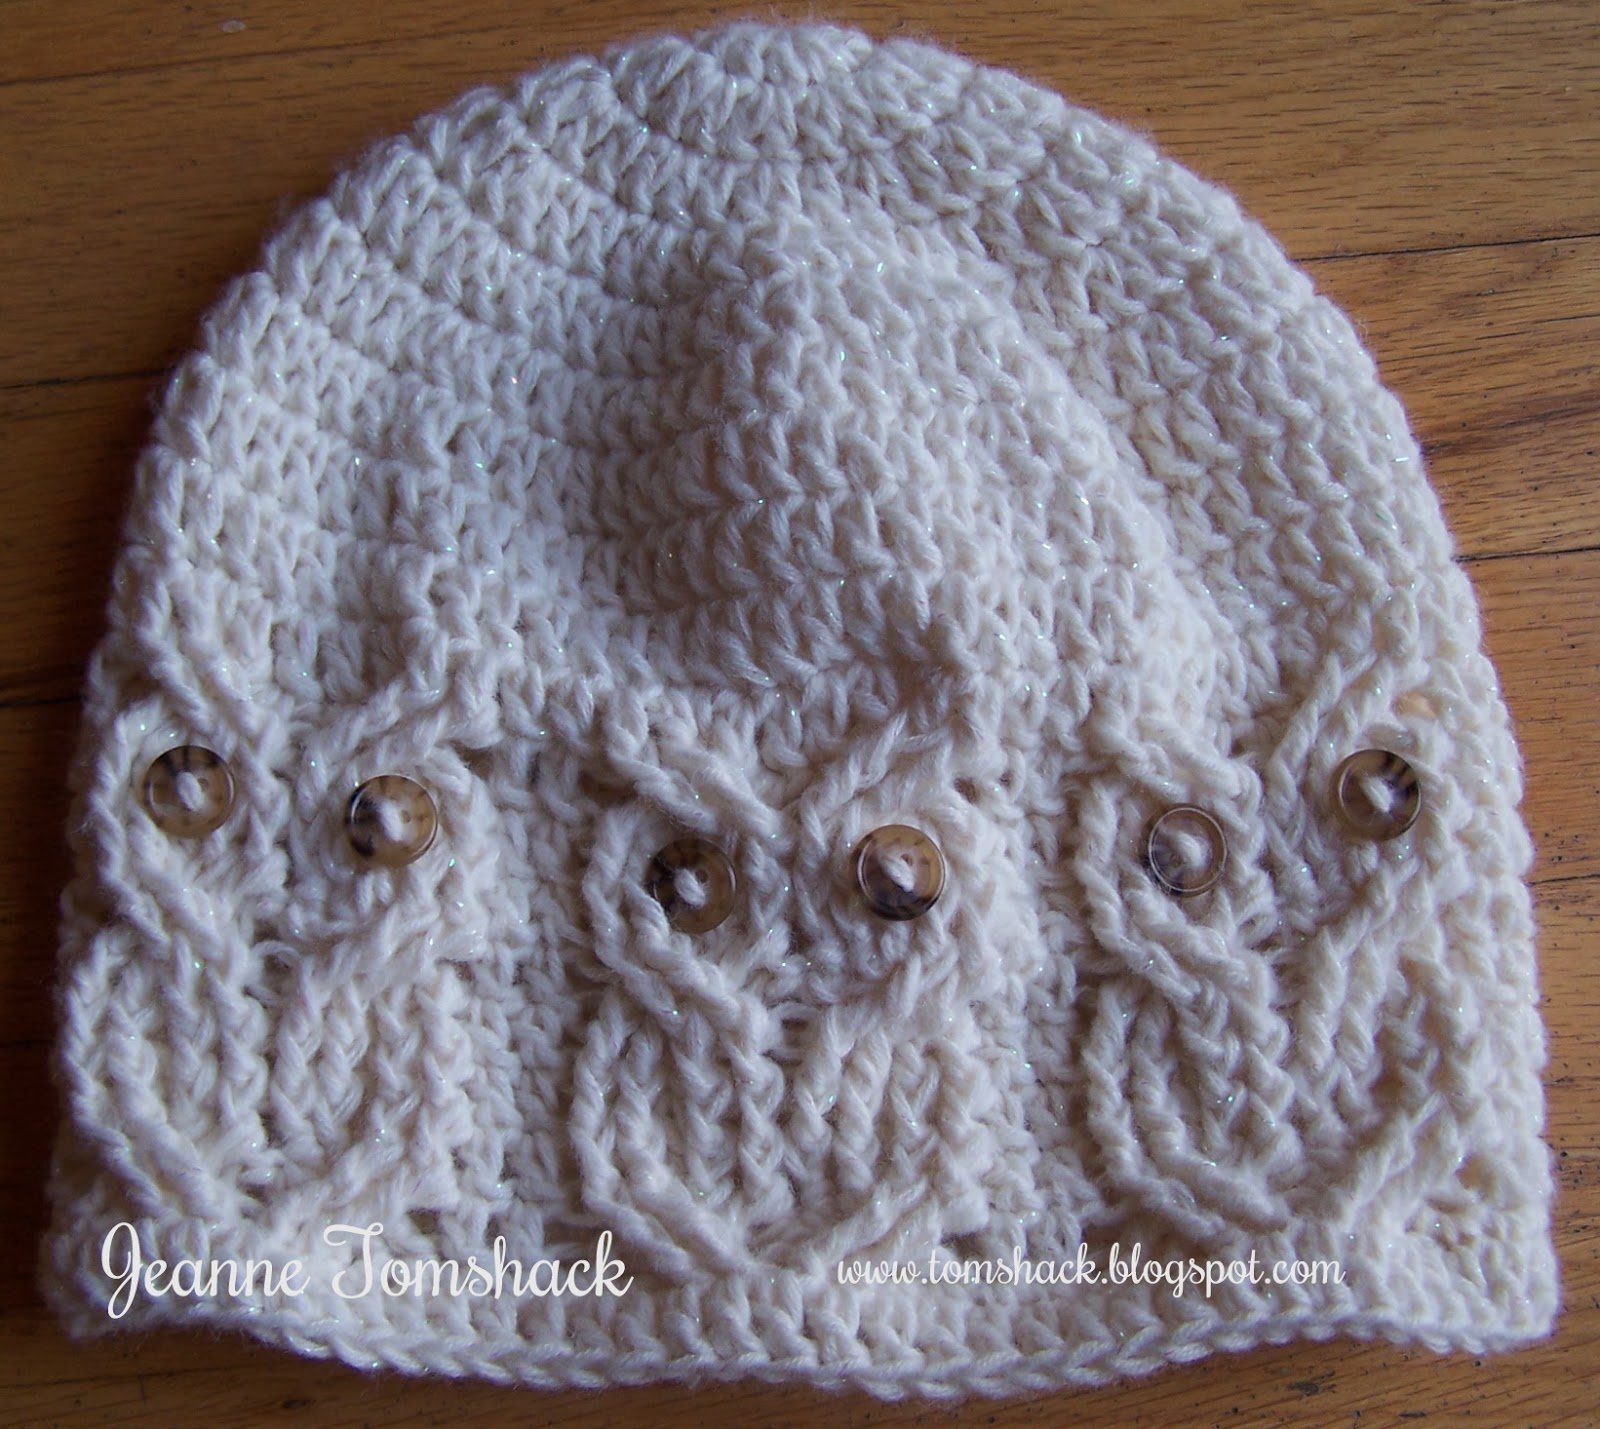 Creative Bliss Crocheted Owl Gifts